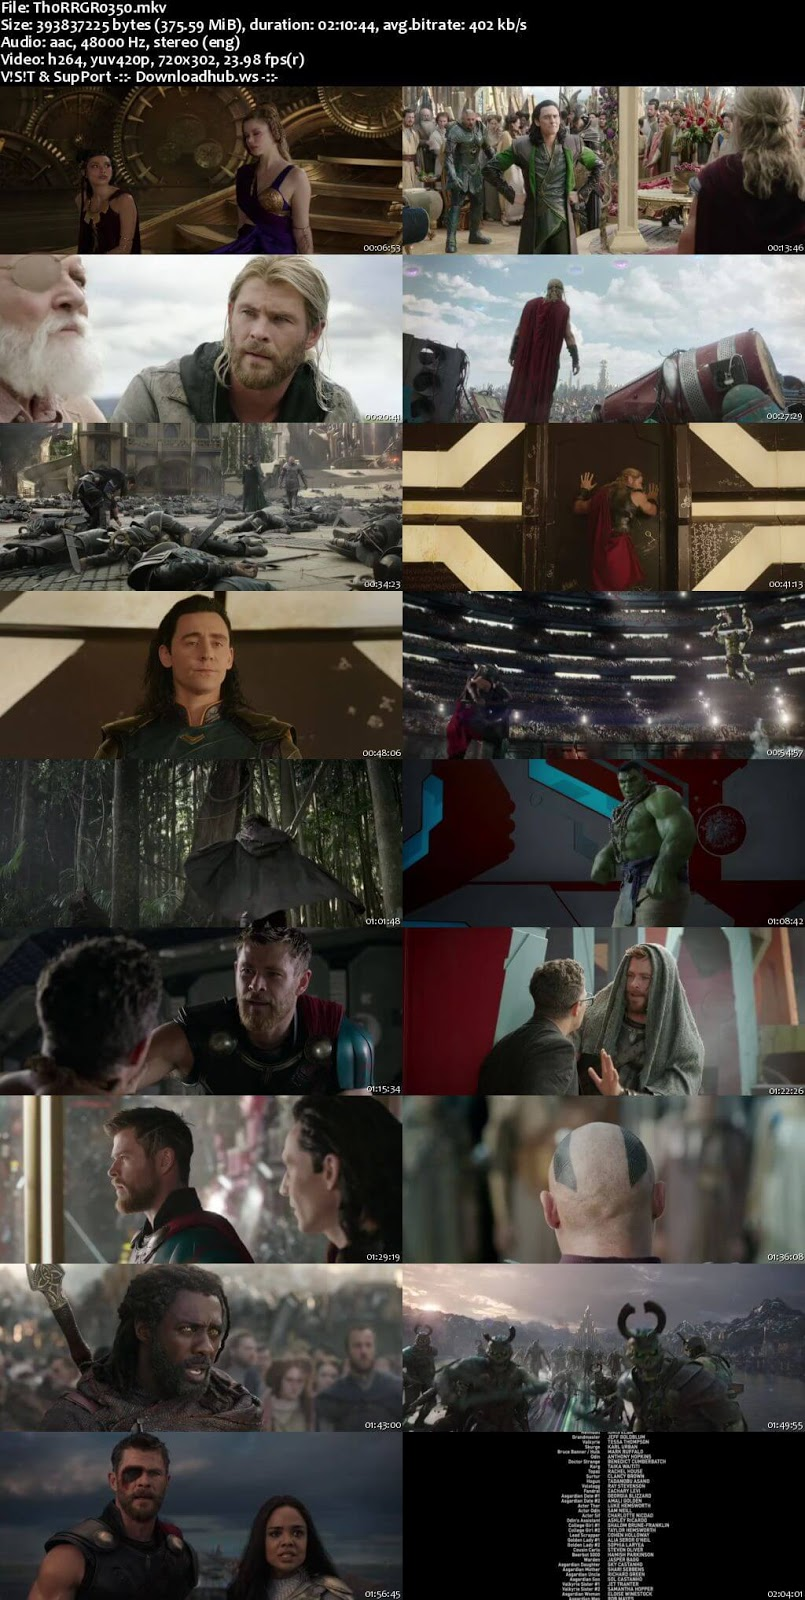 Thor Ragnarok 2017 English 480p Web-DL ESubs